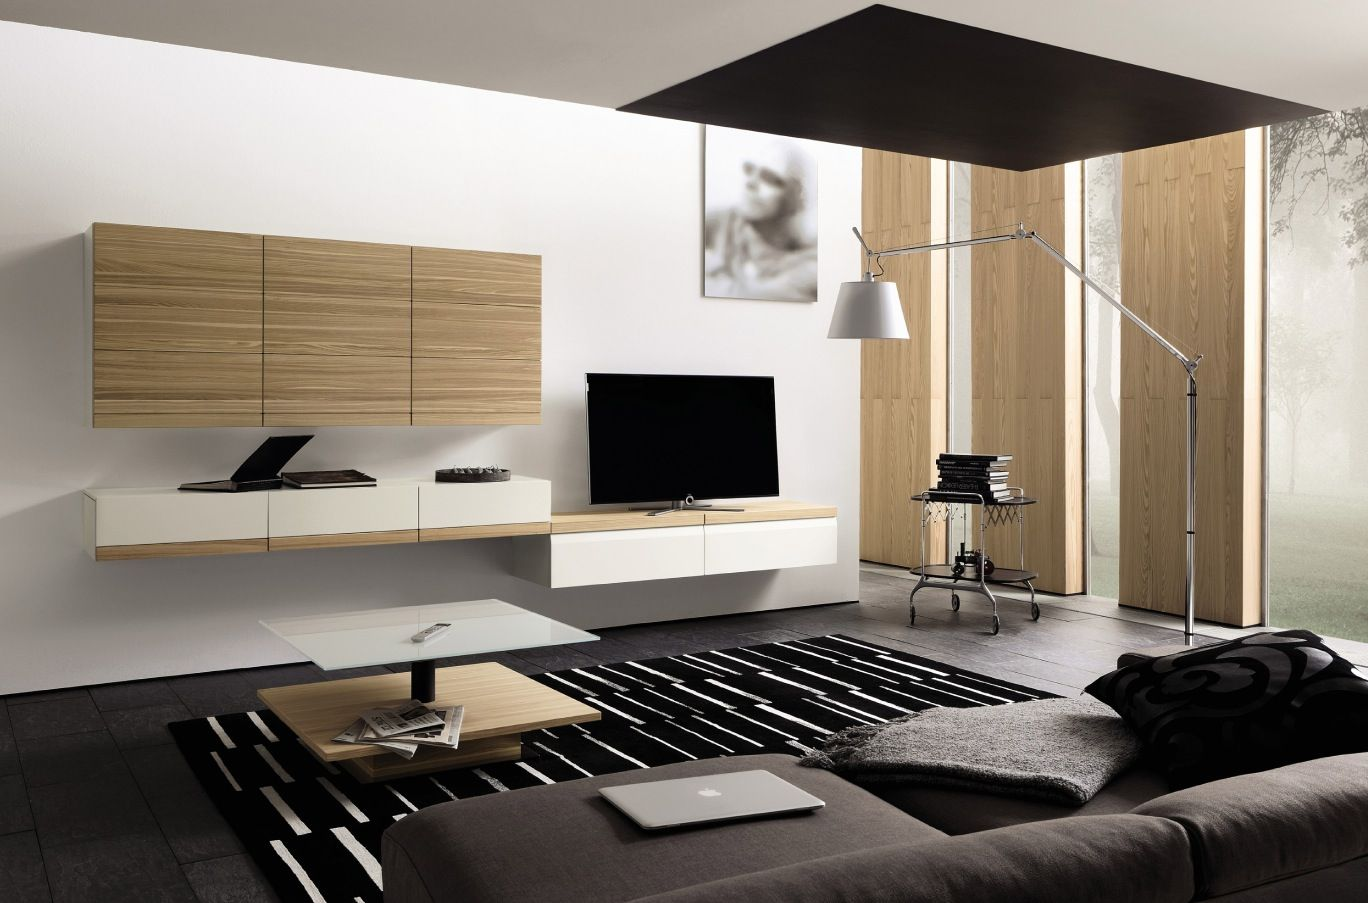 Interior Tv Cabinet Design Ideas For Living Room With Floor Lamp And Minimal Media Center